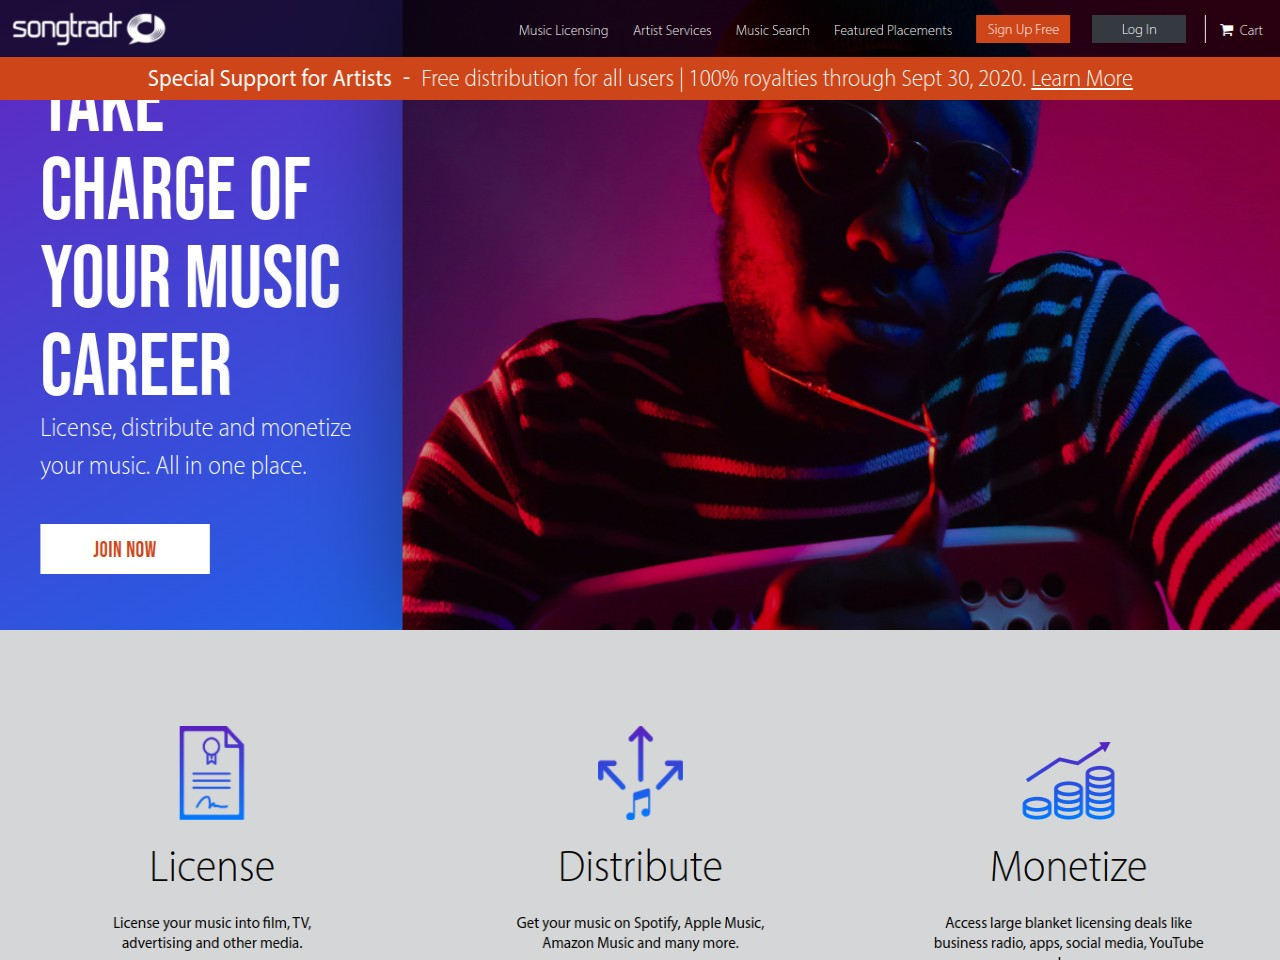 Artist Services - License Distribute Your Music Songtradr